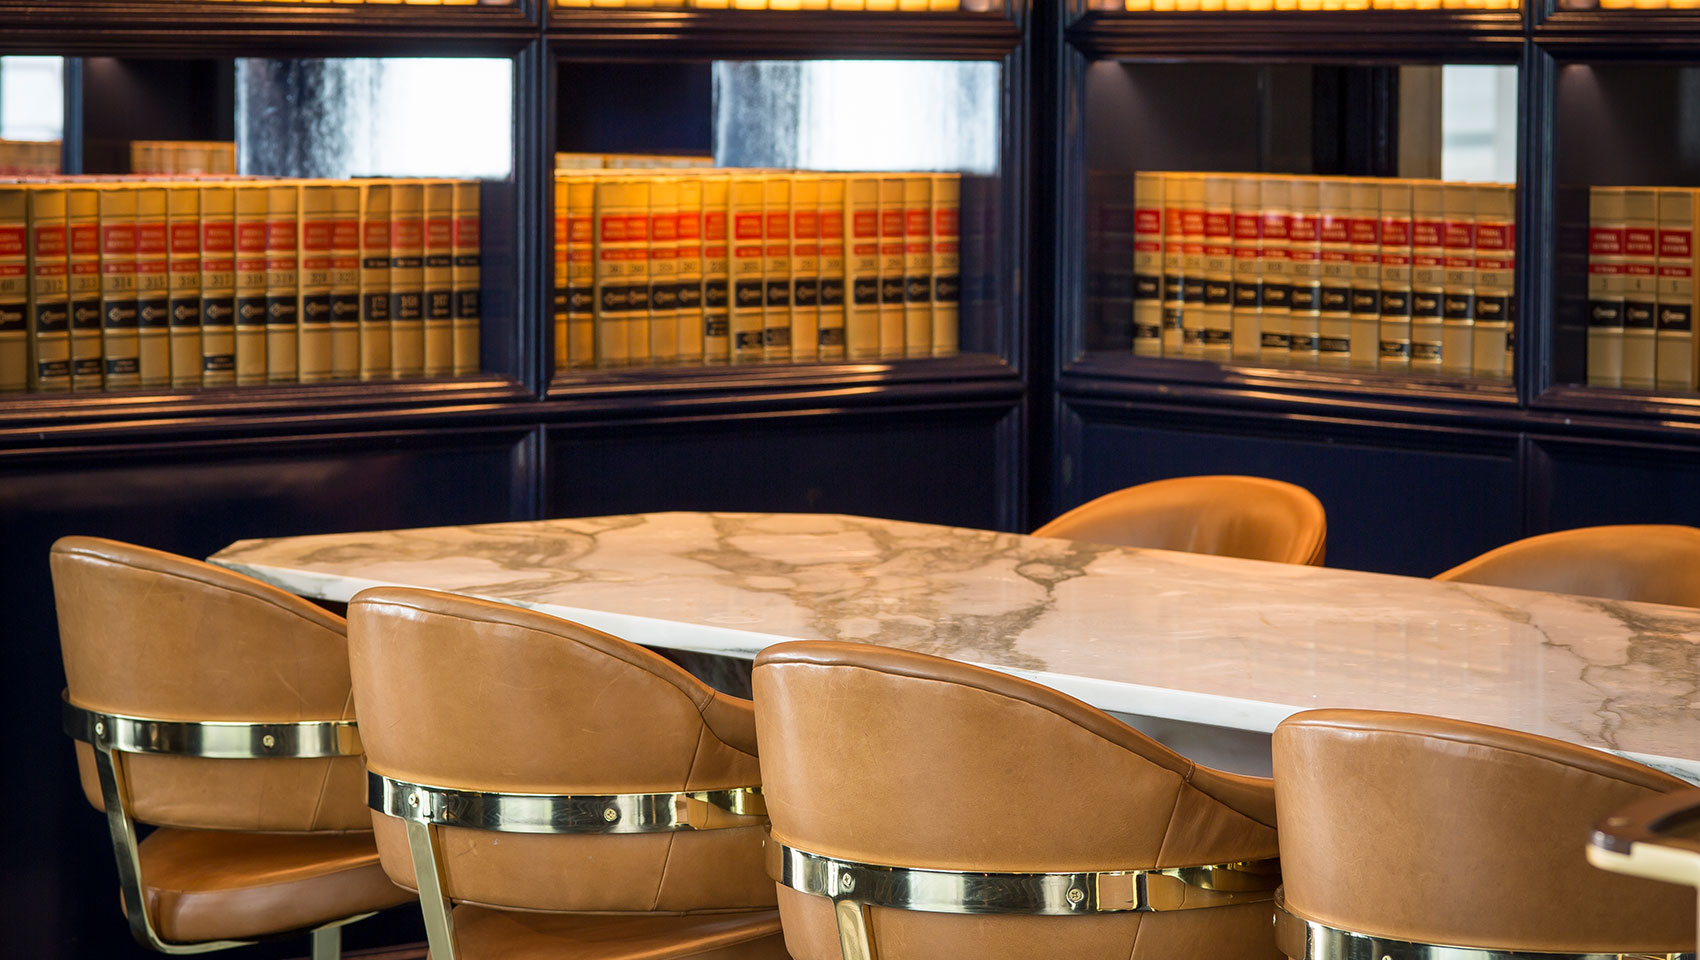 Marble table with leather seating, Bookshelf with leather bound books